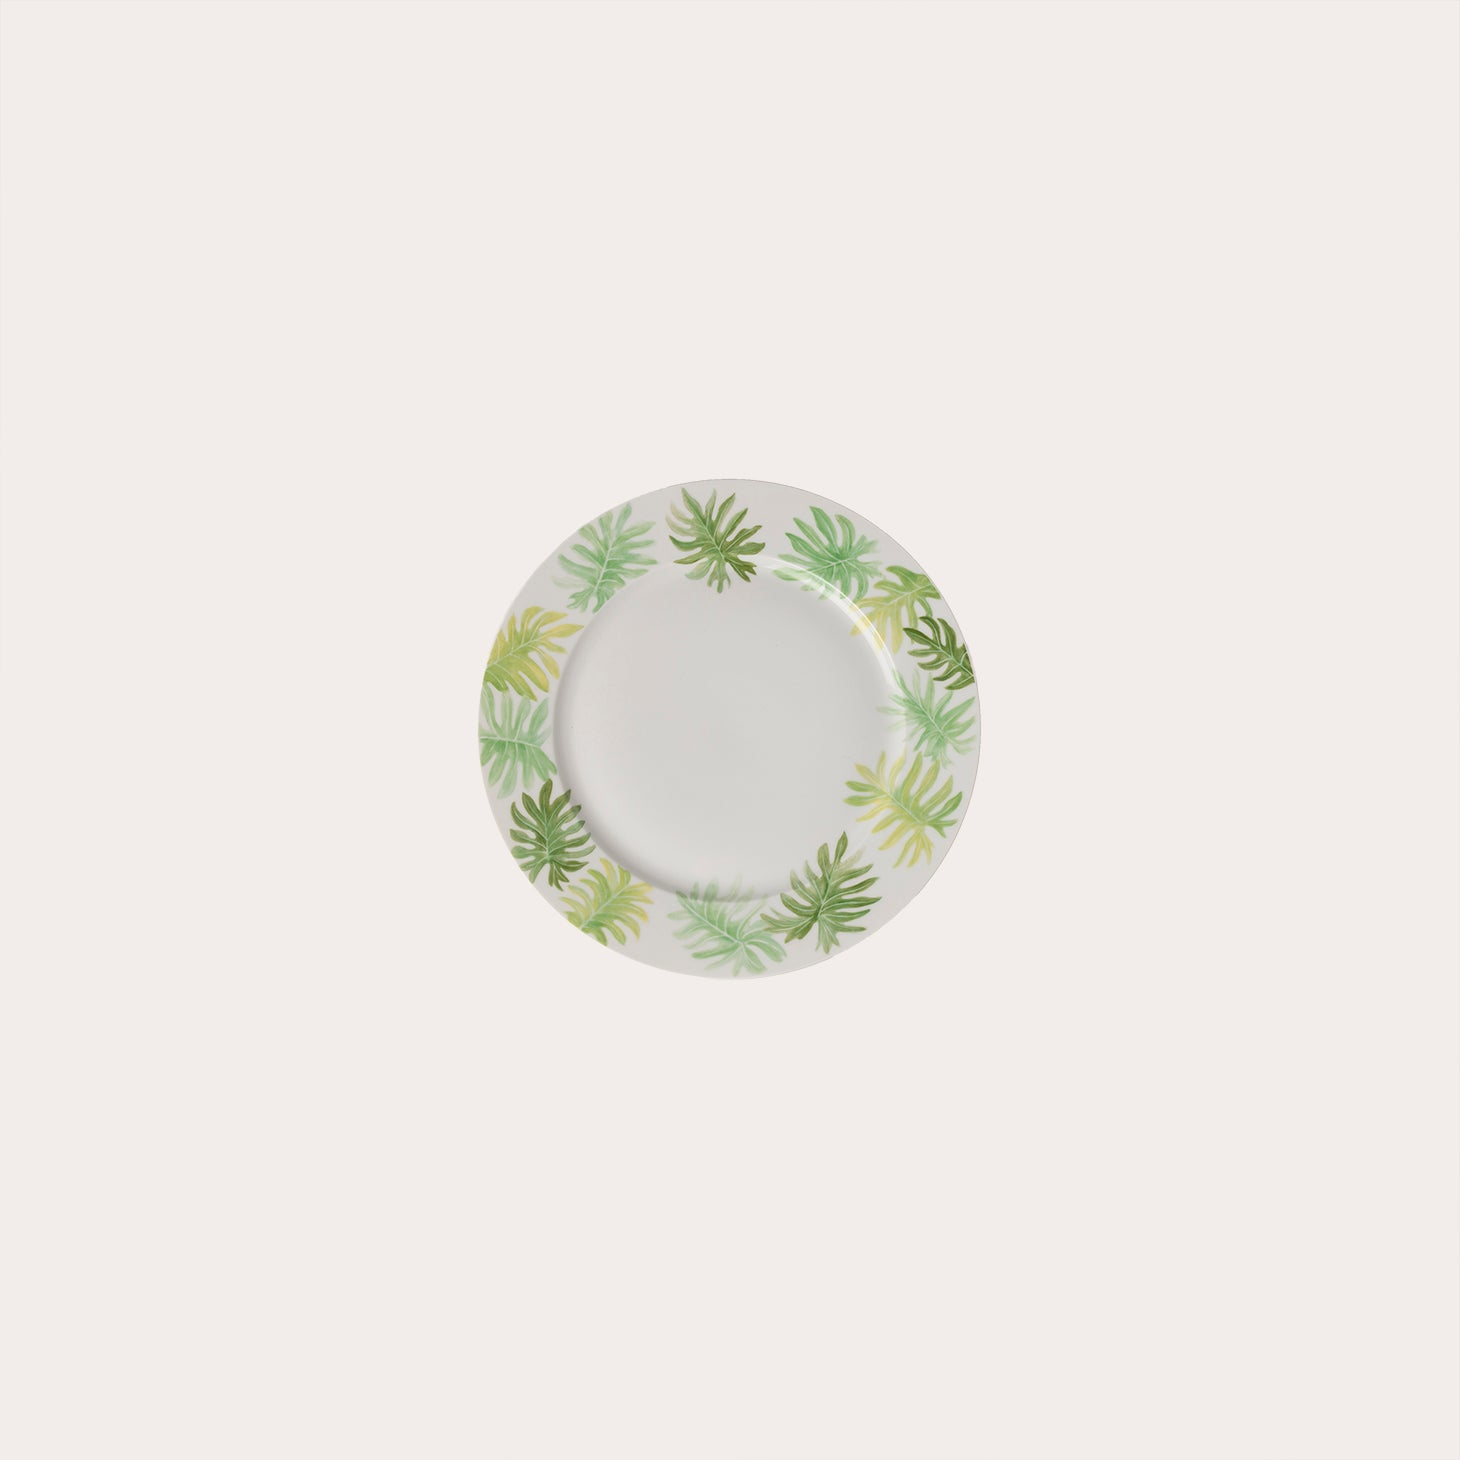 Palm Beach One Presentation Plate Accessories Nymphenburg Designer Furniture Sku: 542-100-10285